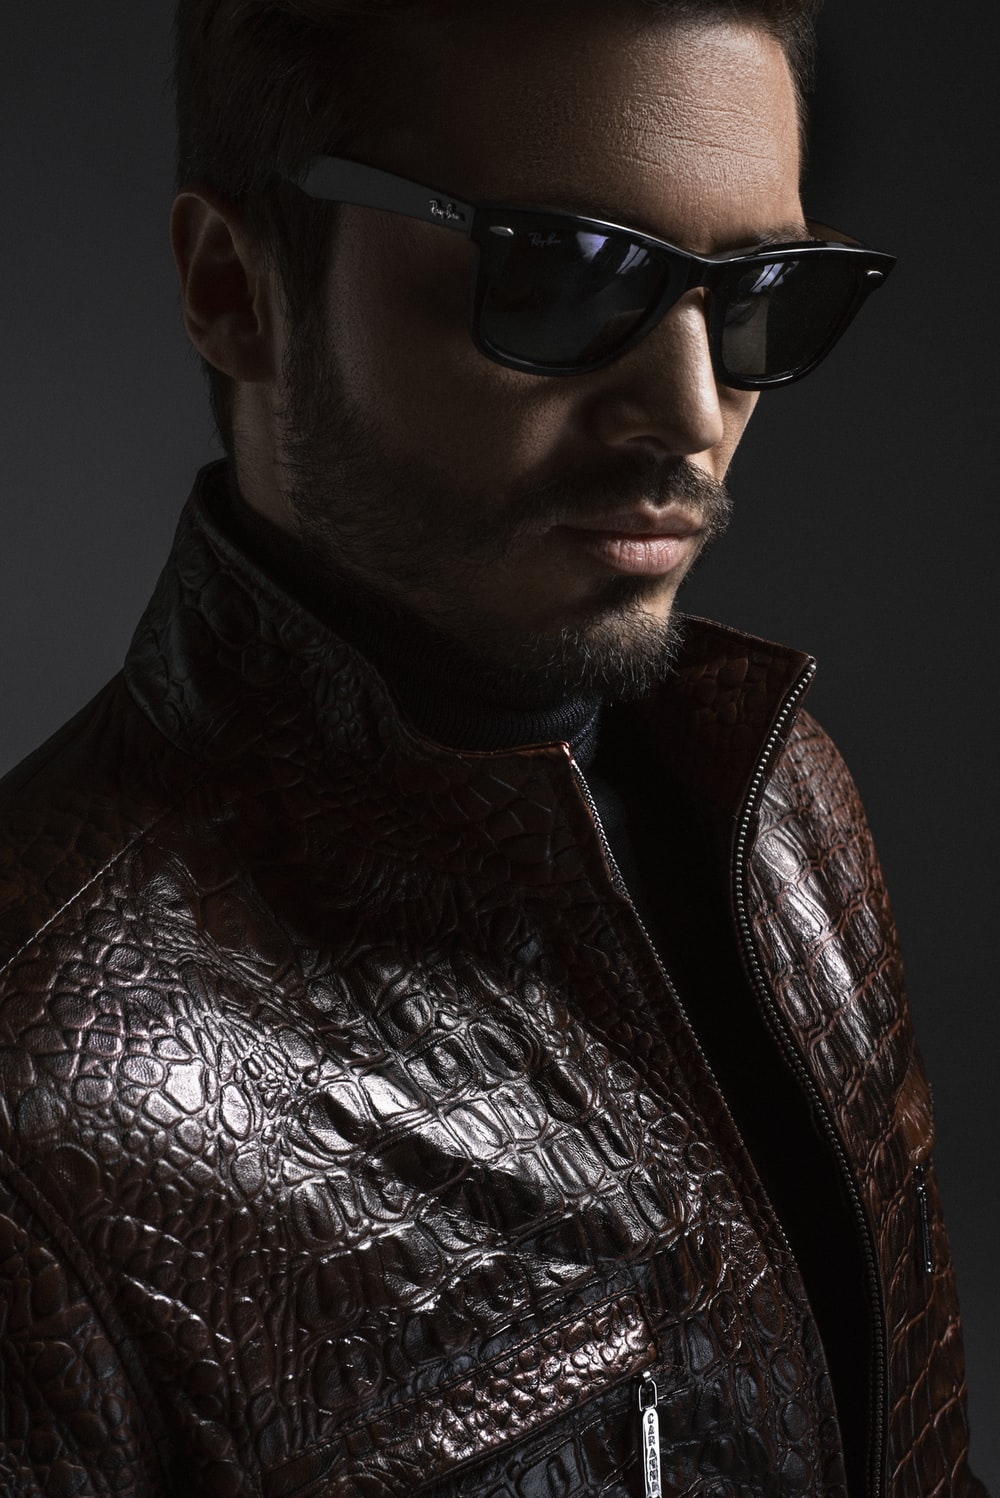 man wearing black leather jacket and sunglasses